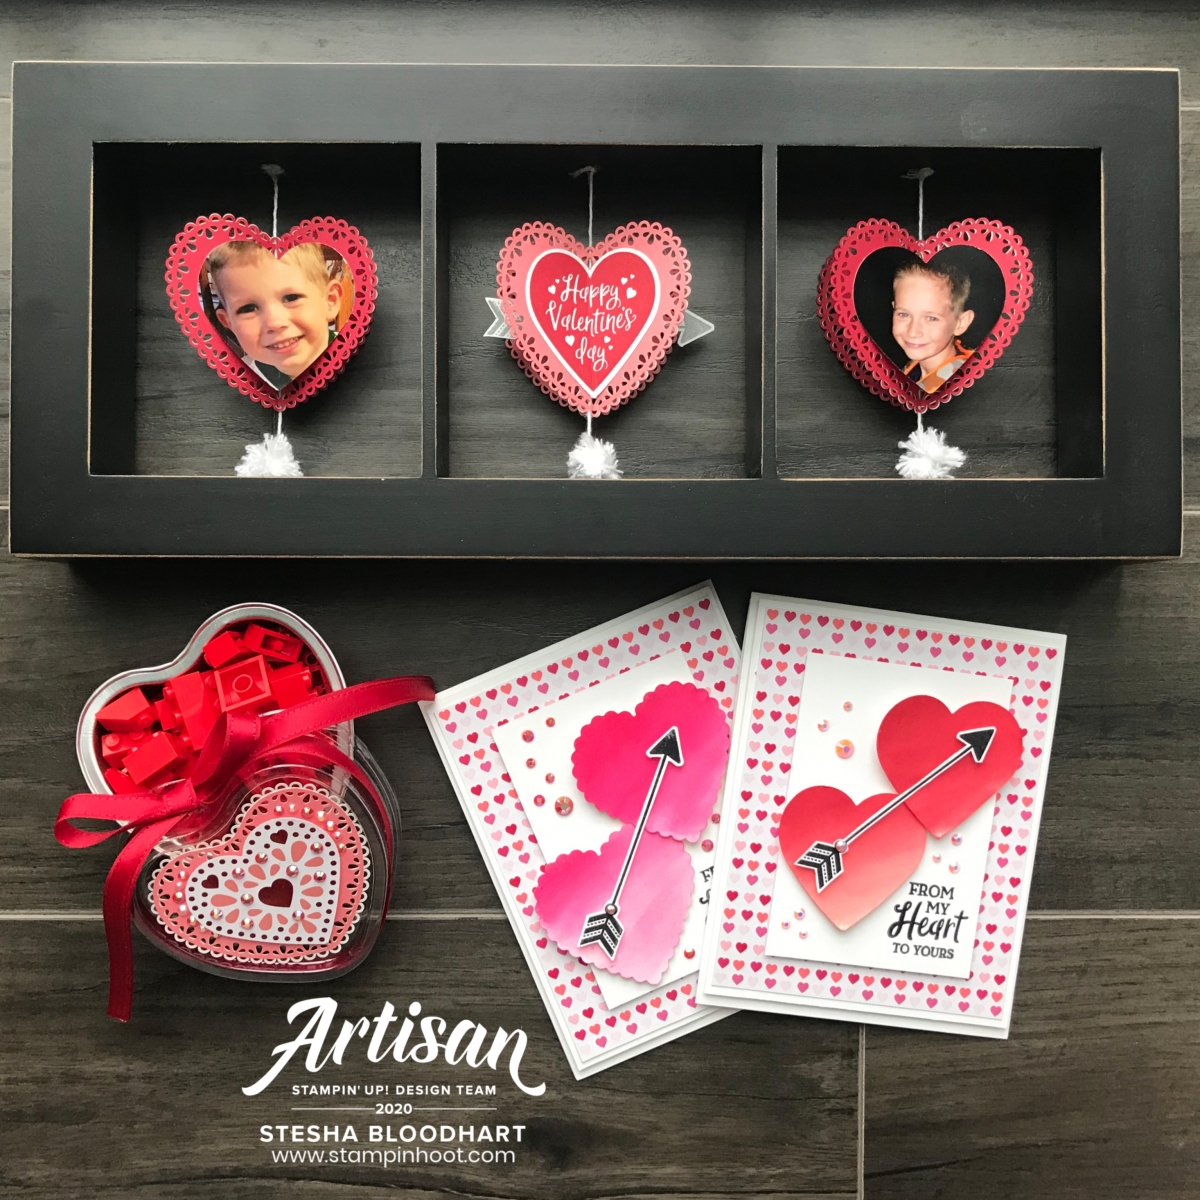 From My Heart Suite Bundle from Stampin' Up! Creations by Stesha Bloodhart, Stampin' Hoot! 2020 Artisan Design Team Blog Hop